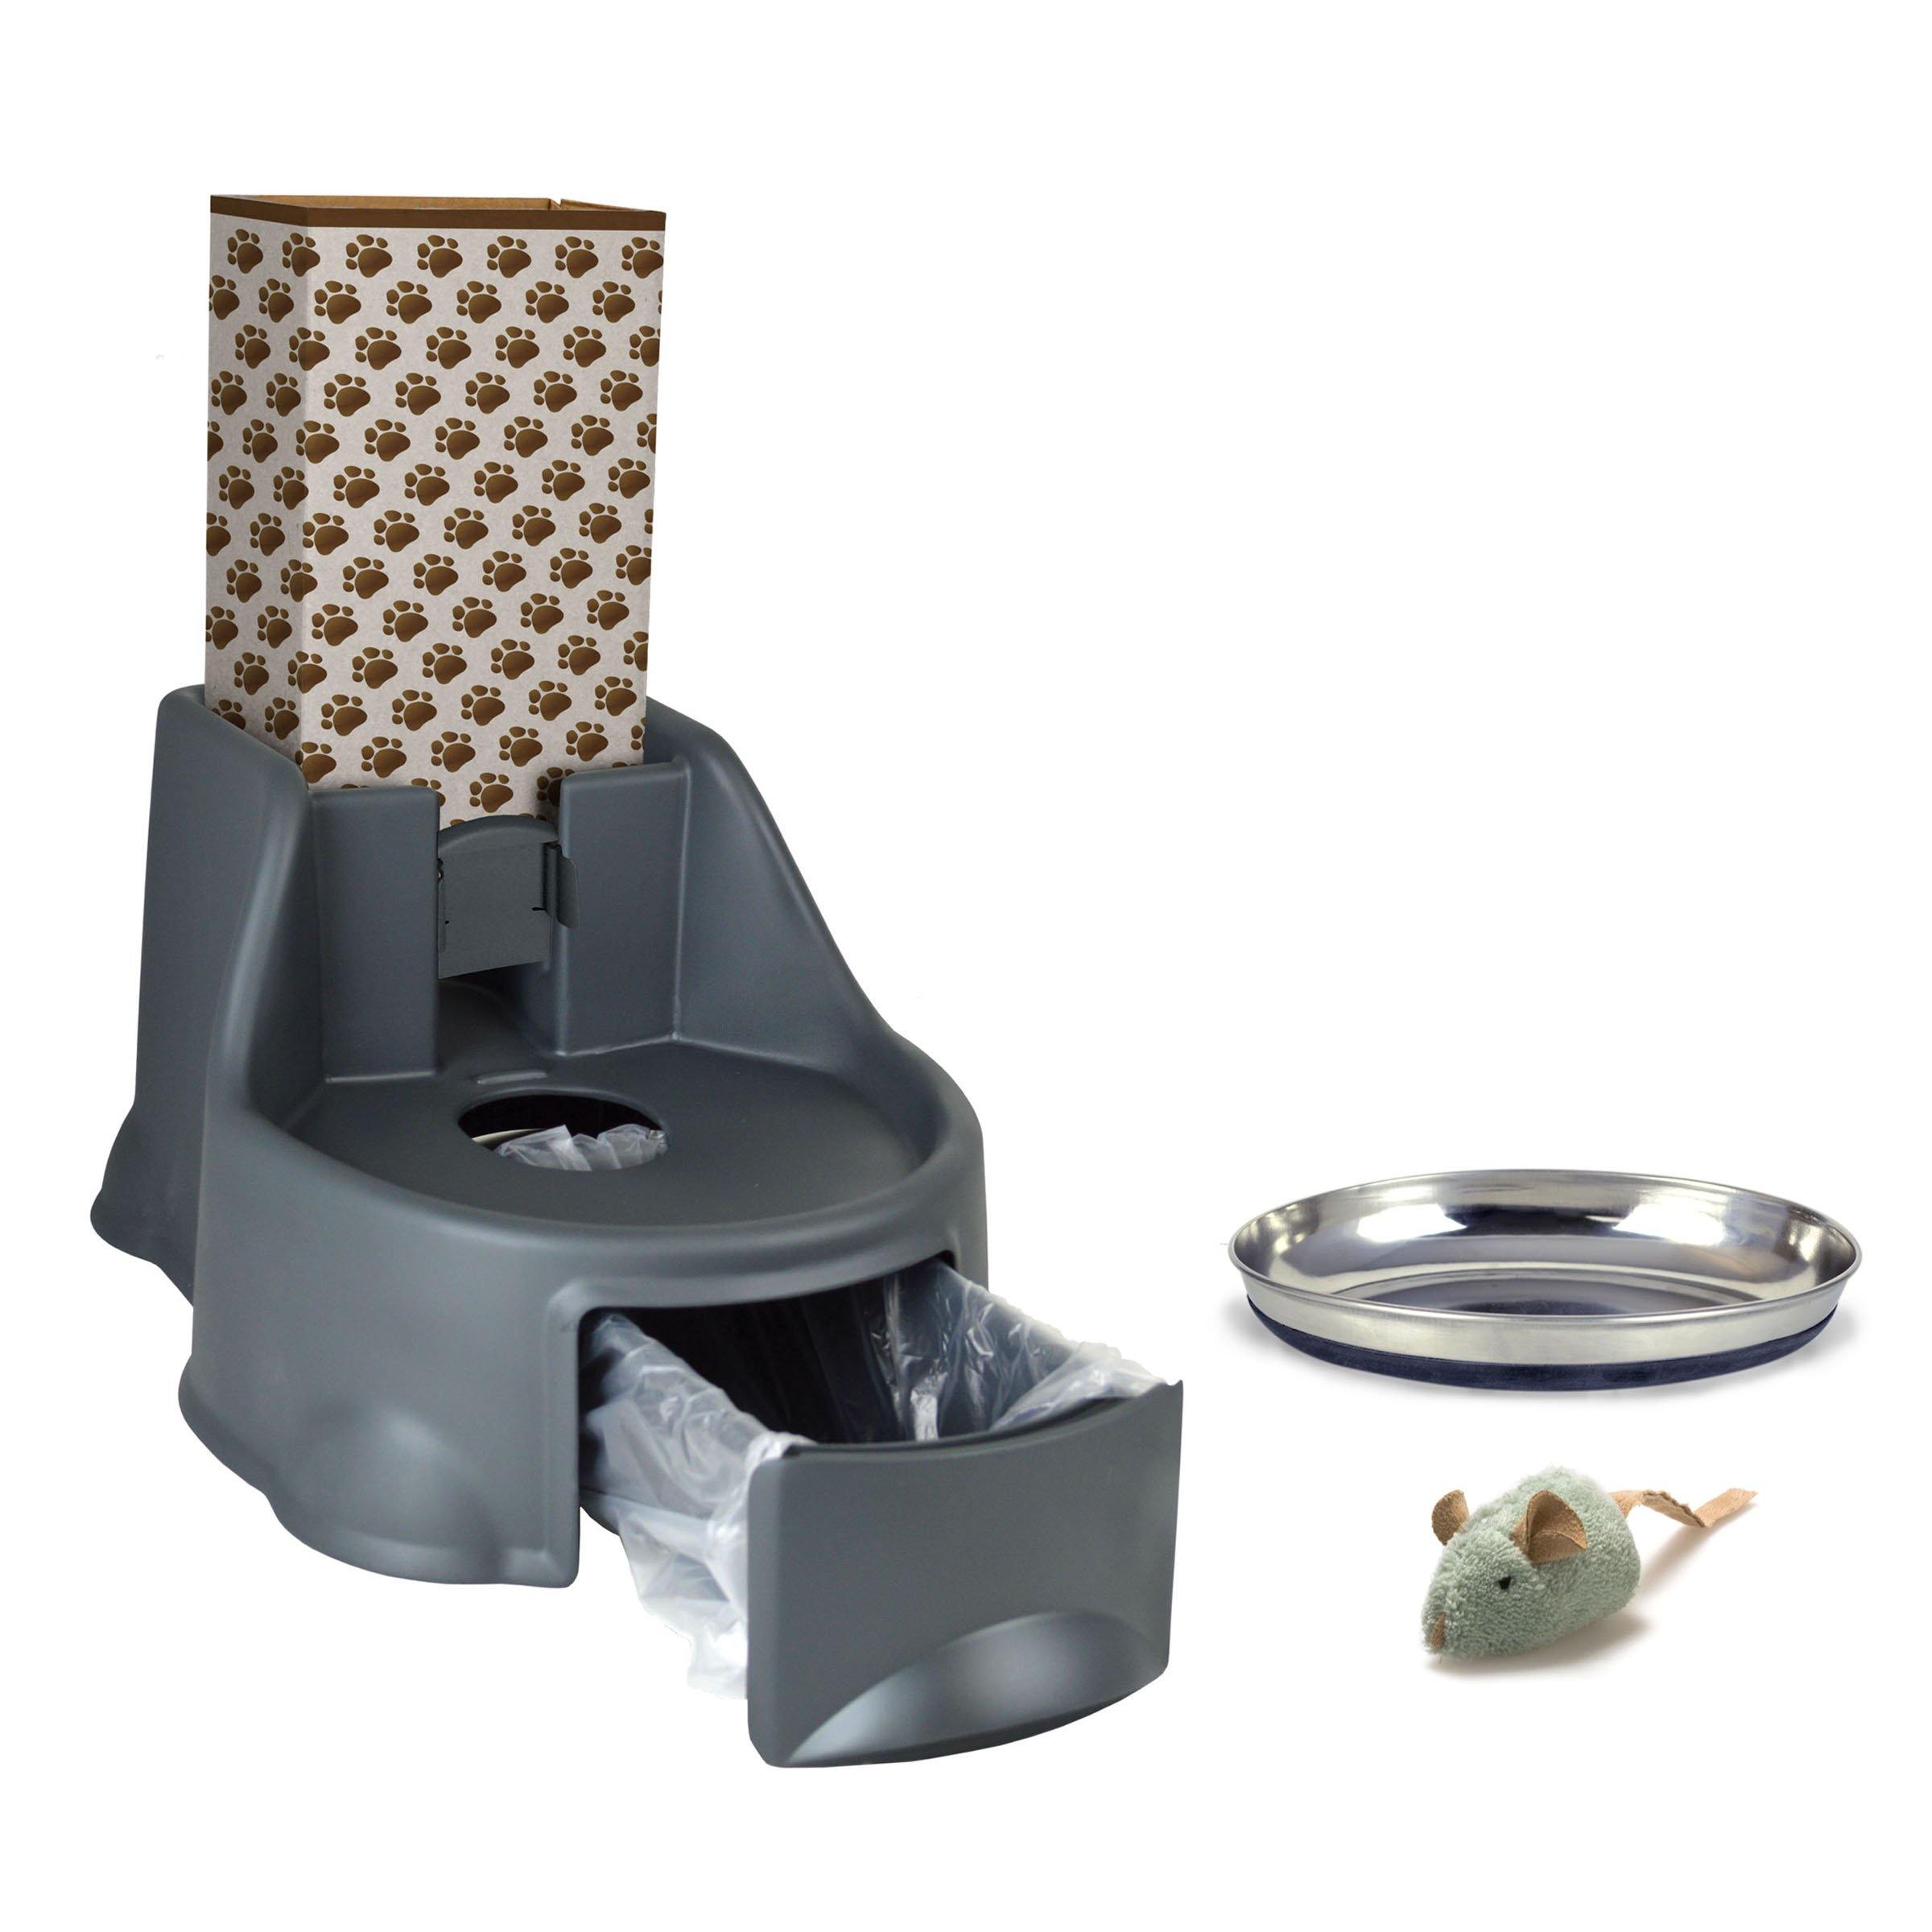 Our Pets Kitty Potty Cat Litter Box Kit by Our Pets